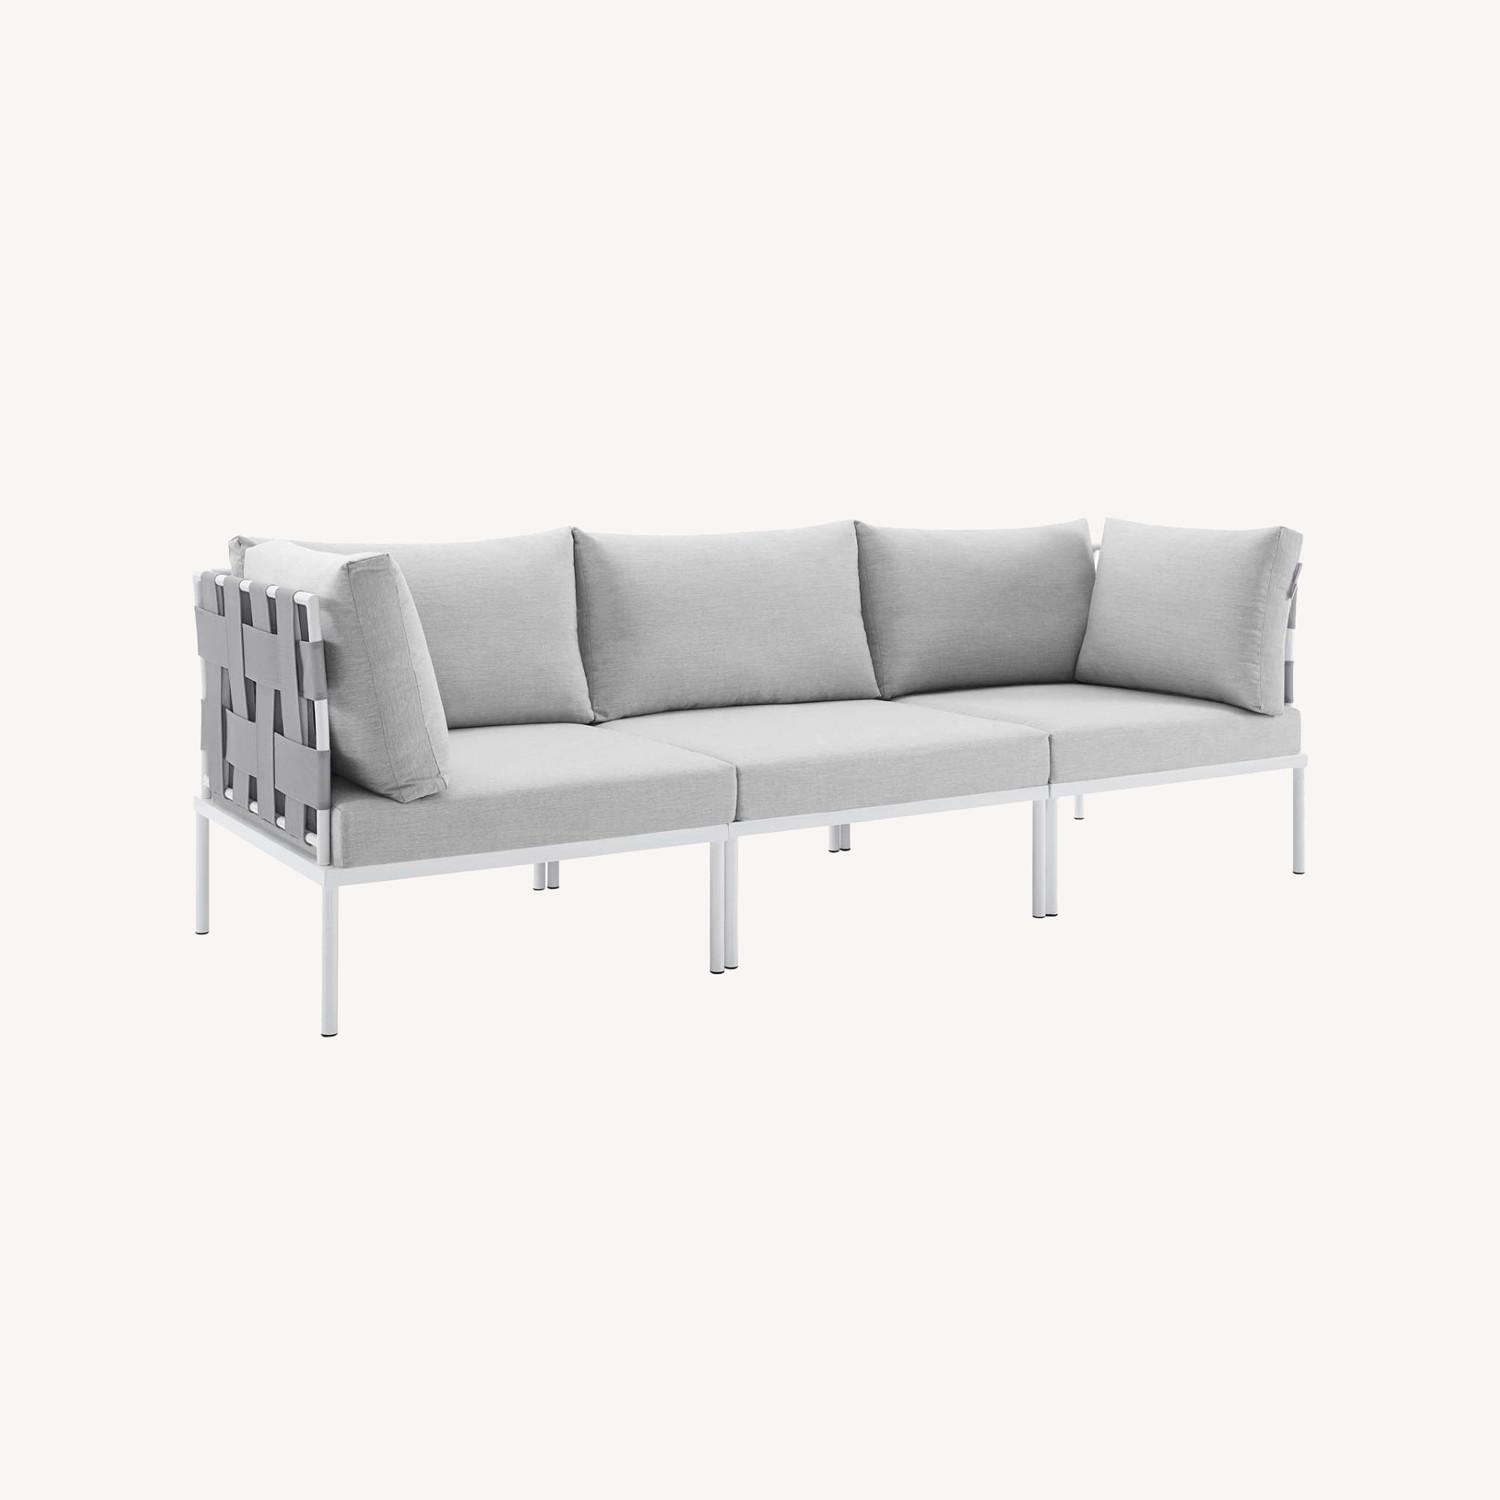 Outdoor Sofa In Gray Silk Weave & Gray Cushion - image-4